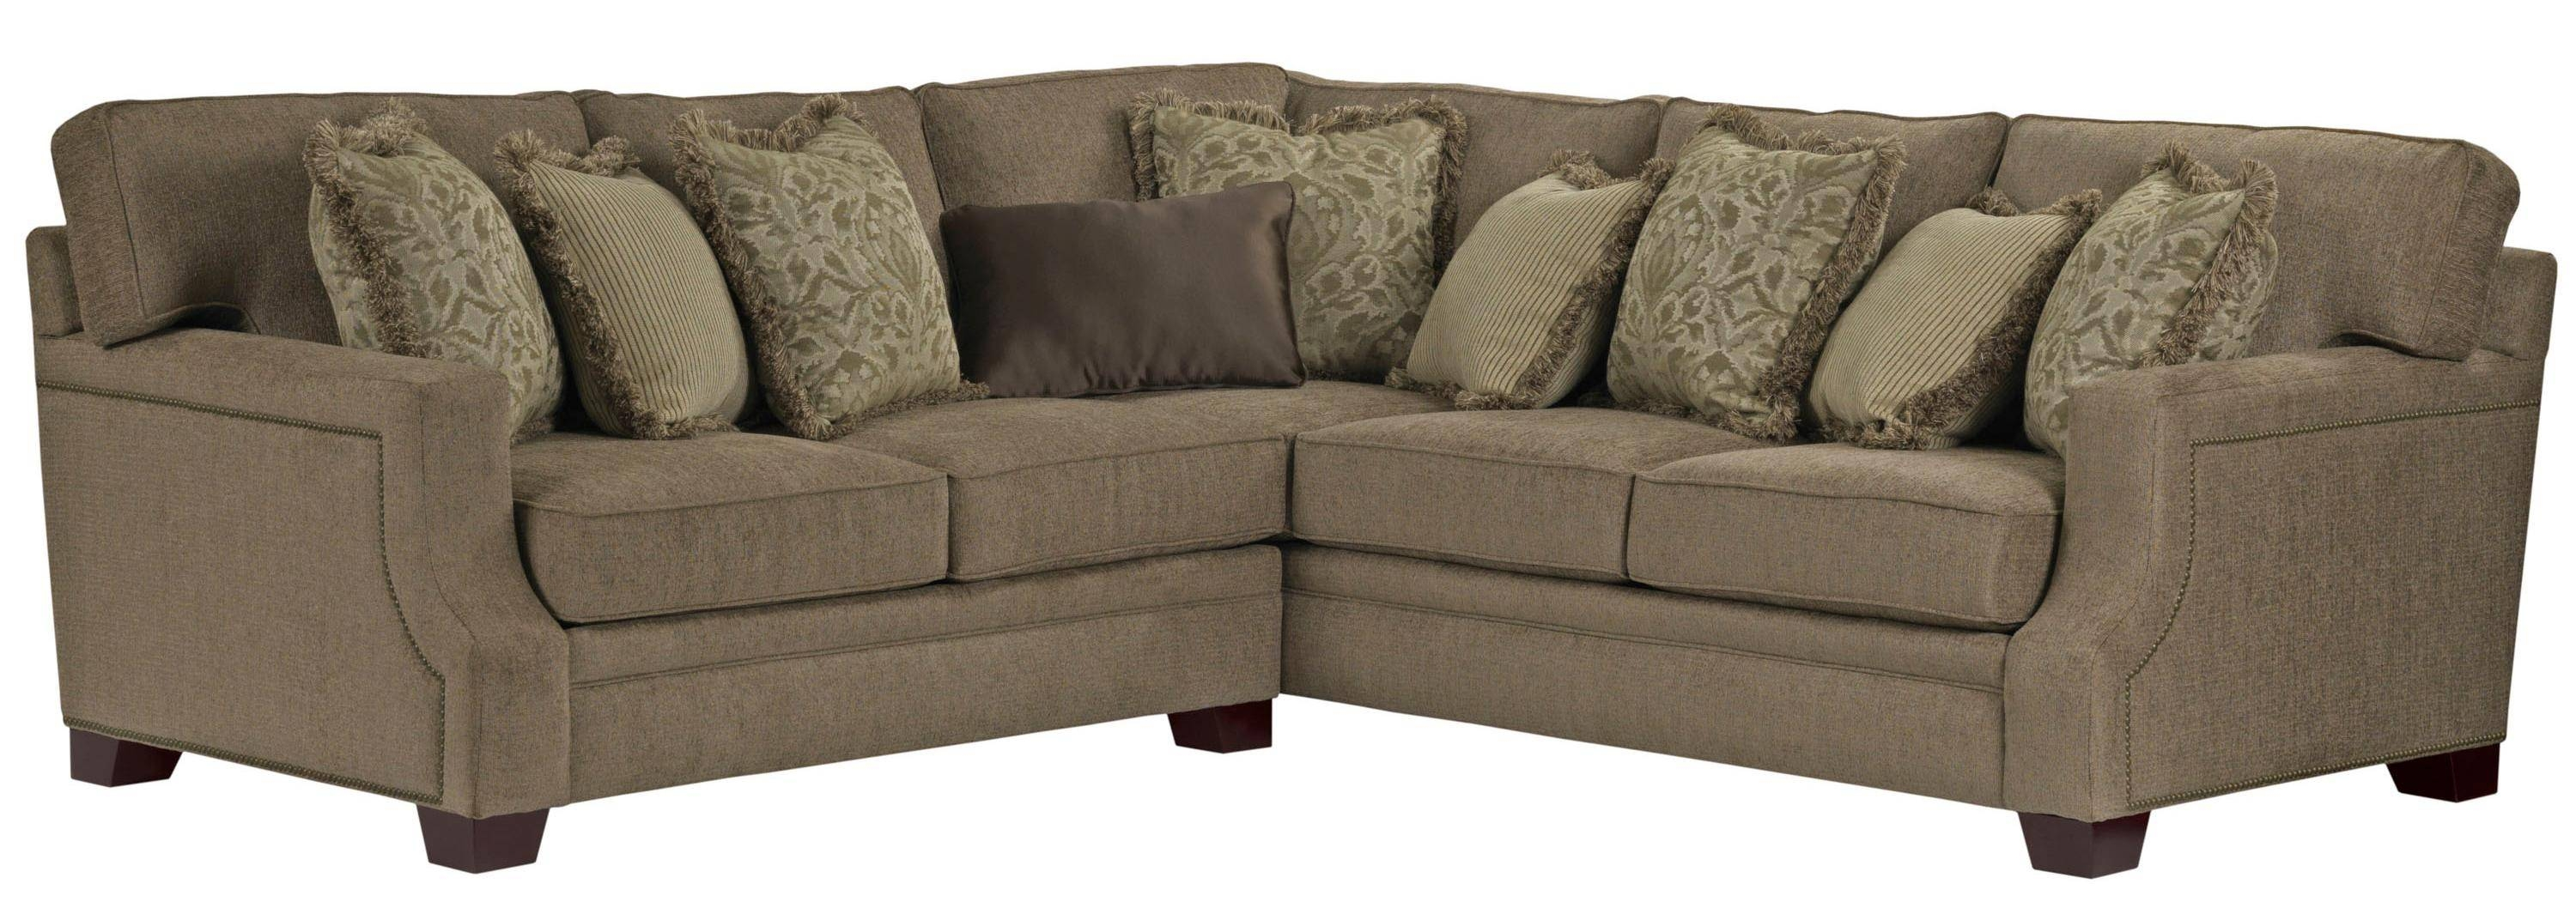 Furniture: Broyhill Furniture | Broyhill Fontana Sofa | Broyhill Sofas for Broyhill Sectional Sofas (Image 21 of 30)